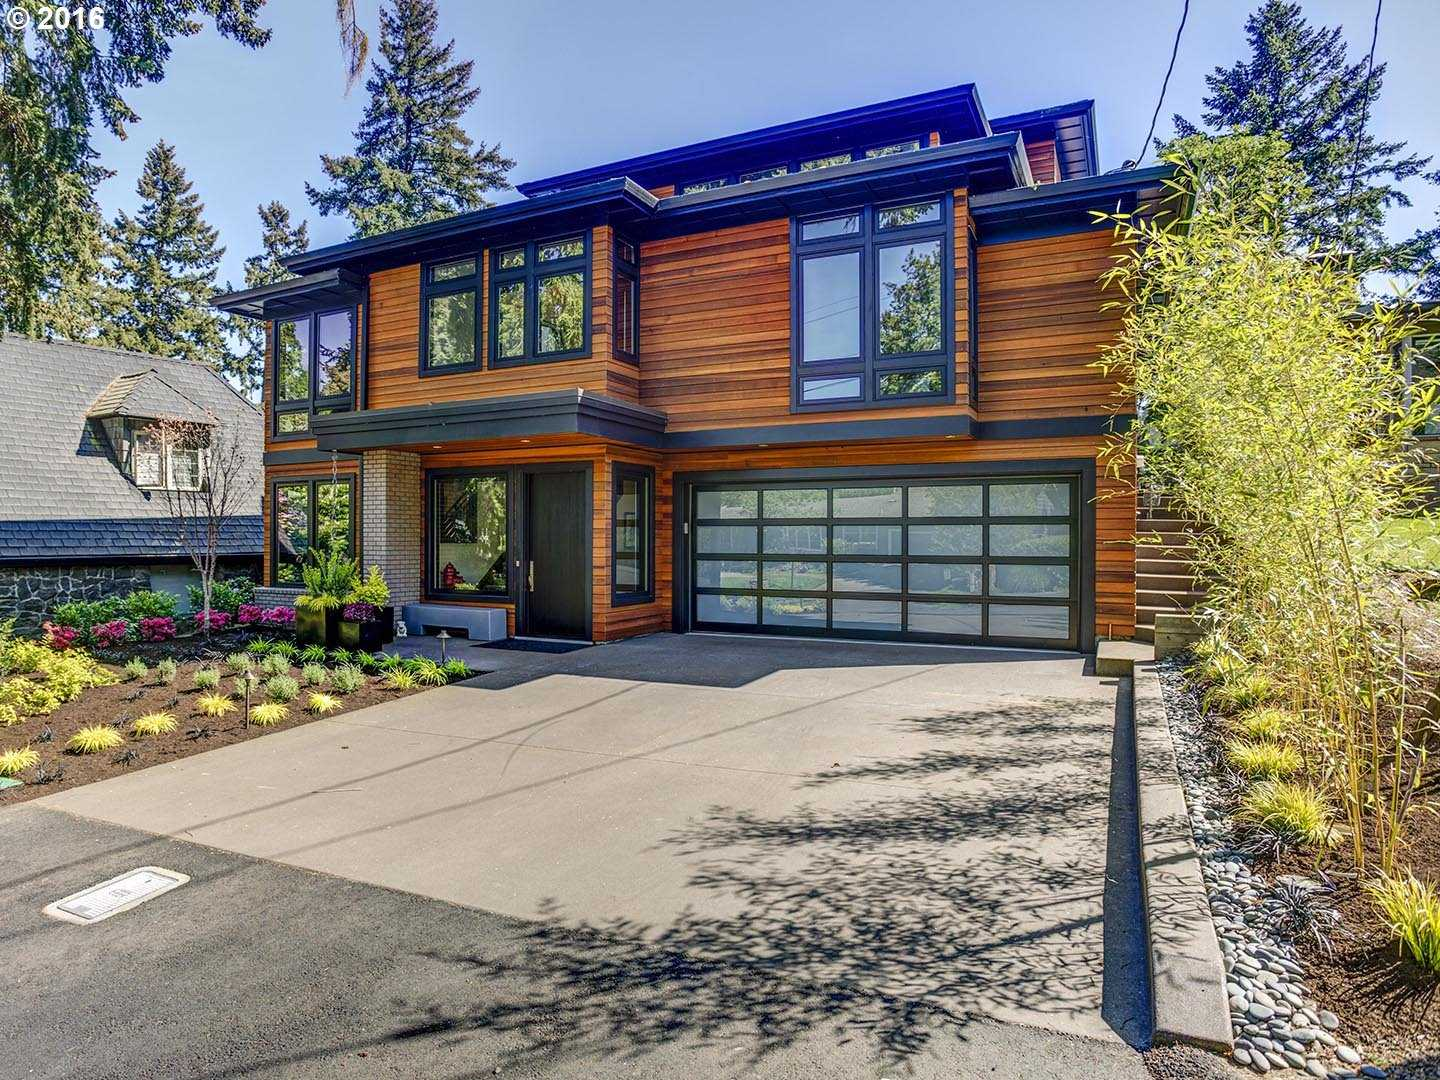 $2,695,000 - 4Br/4Ba -  for Sale in Lakewood Bay, Lake Oswego